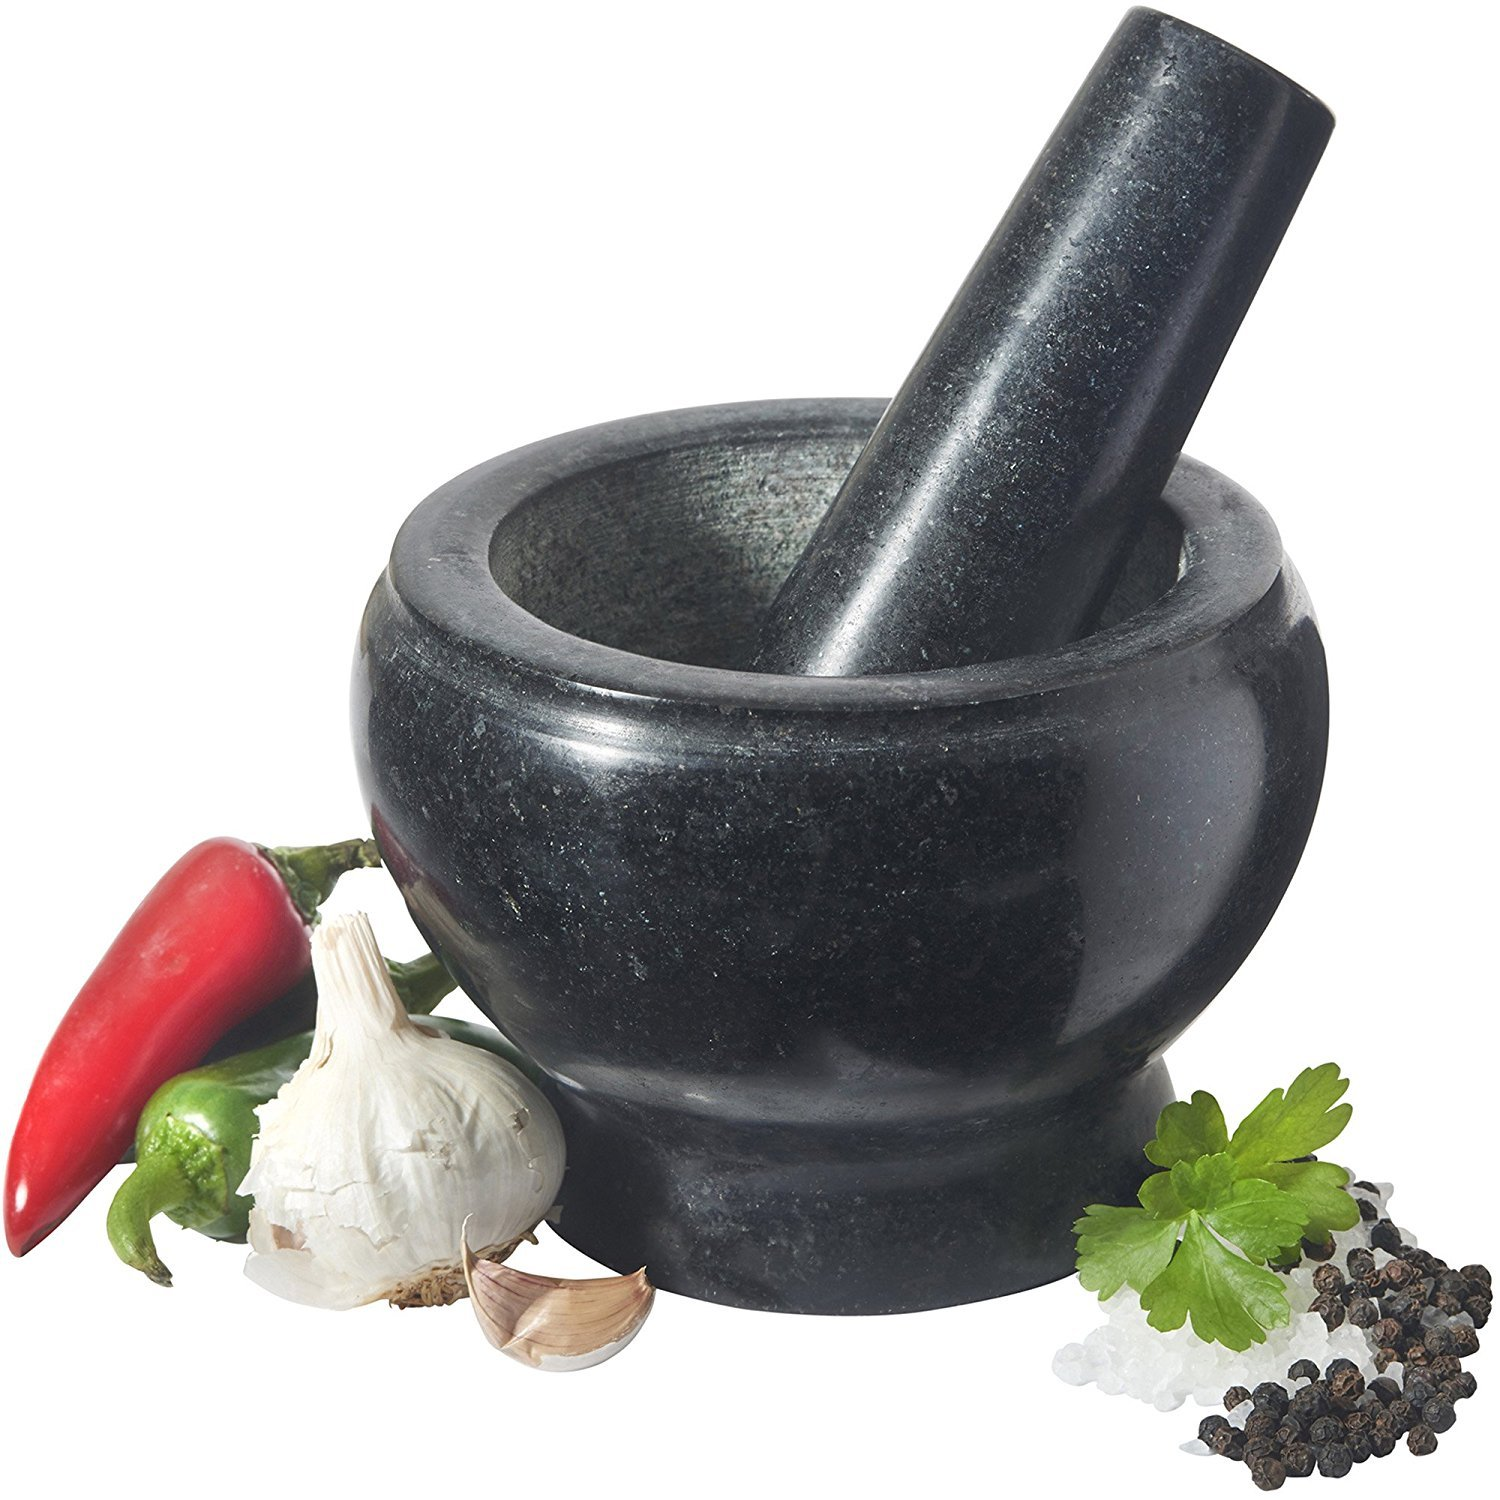 VonShef 07/062 Solid Granite Mortar and Pestle Spice Herb Grinder Set - 5.5 Inch Diameter - Perfect For Making Guacamole Salsa and Curries